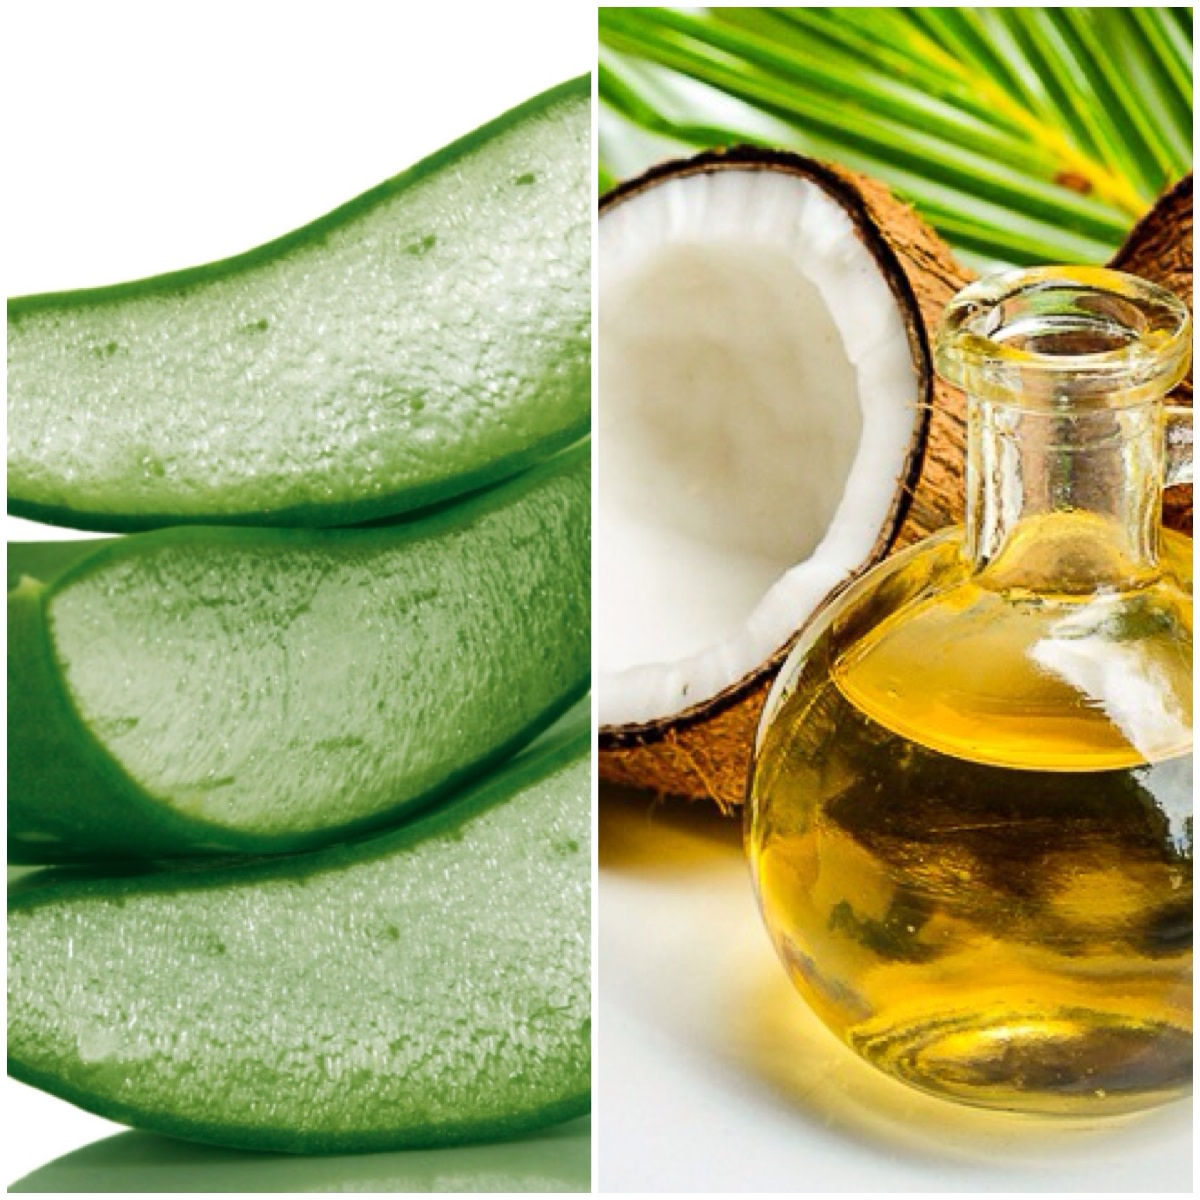 Aloe vera and coconut oil both have many uses. Find out which is better for your purposes!